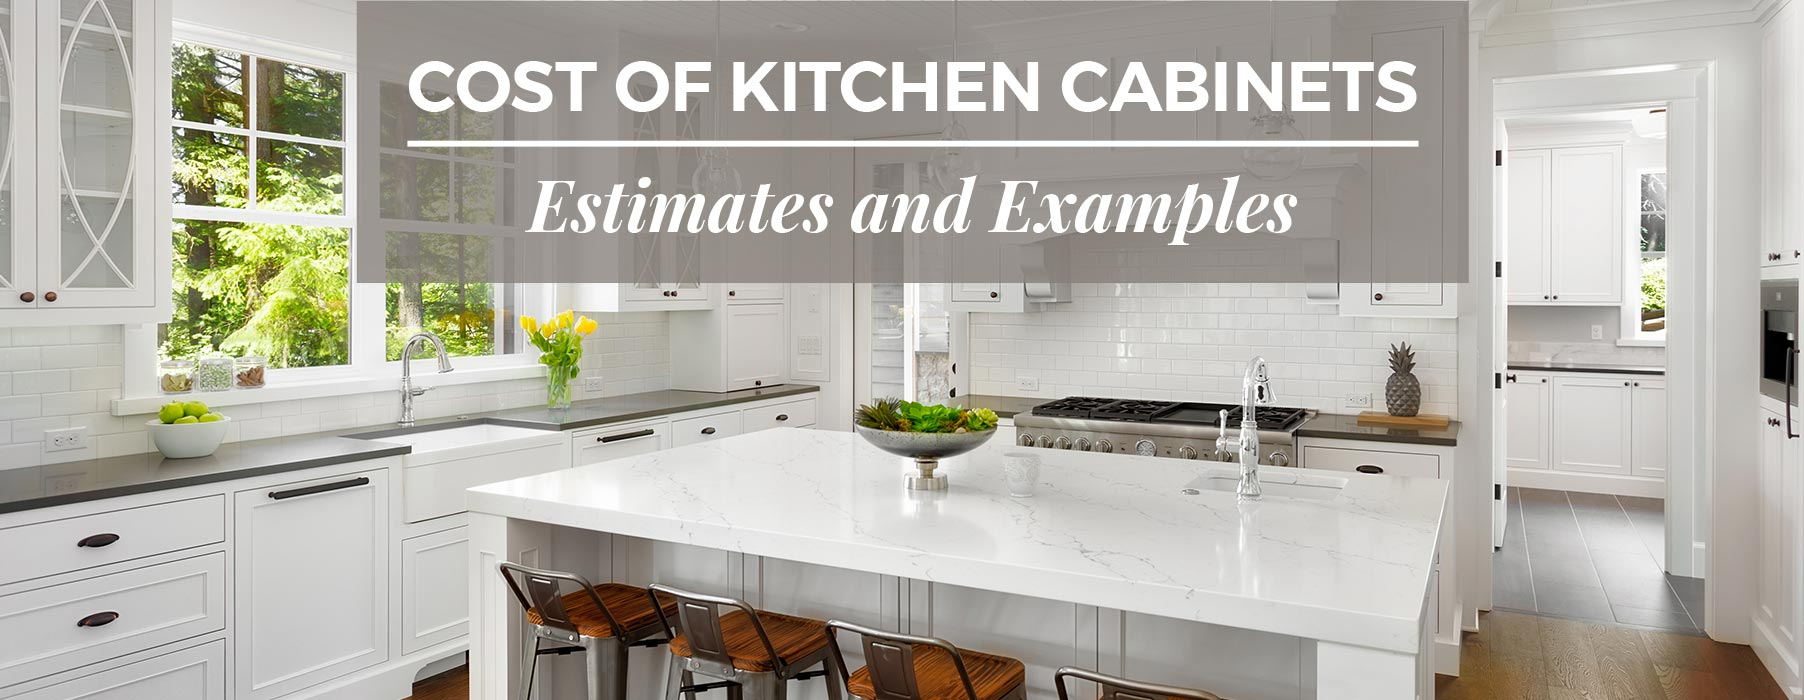 Kitchen Design Store Knoxville Tn Cost Of Kitchen Cabinets Estimates And Examples